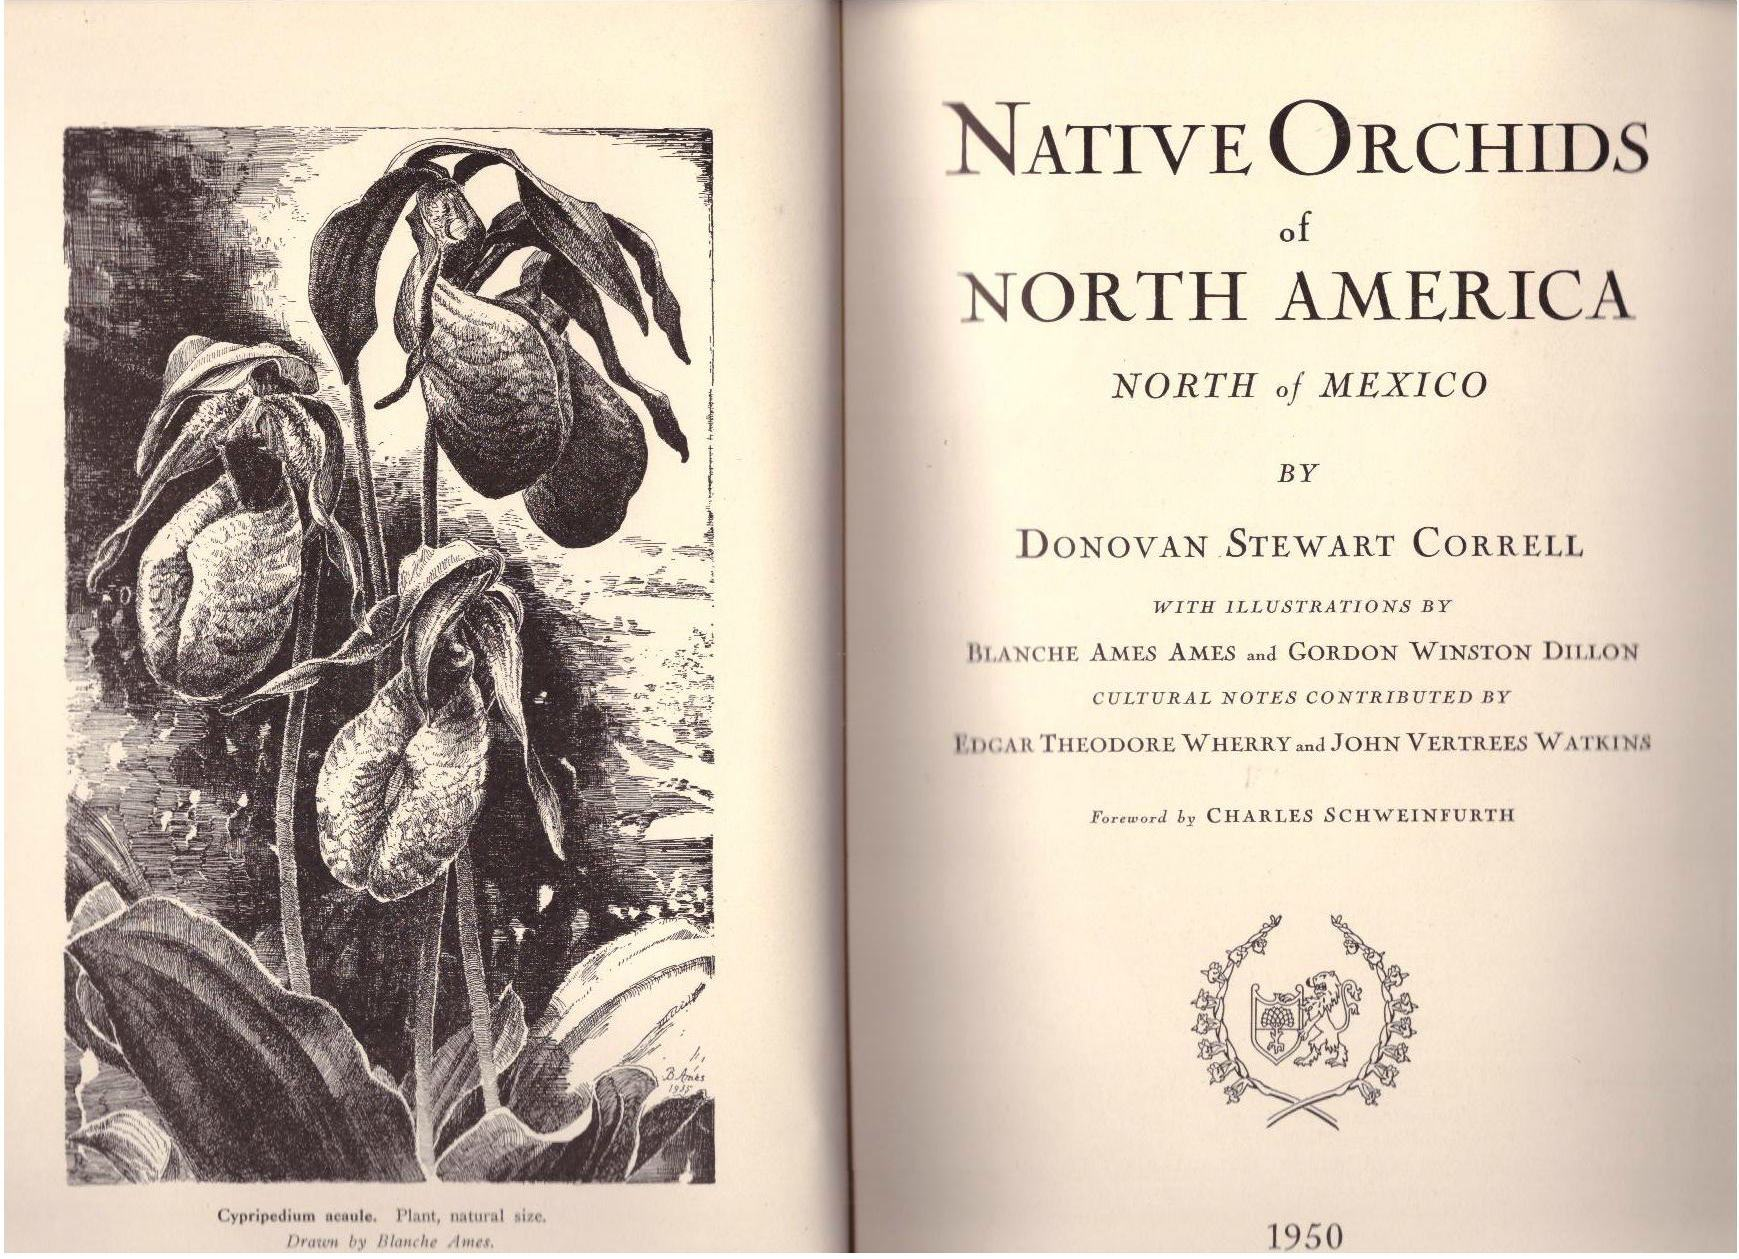 Native Orchids of North America: North of Mexico, Correll, Donovan Stewart; with illustrations by Blanche Ames Ames and Gordon Winston Dillon